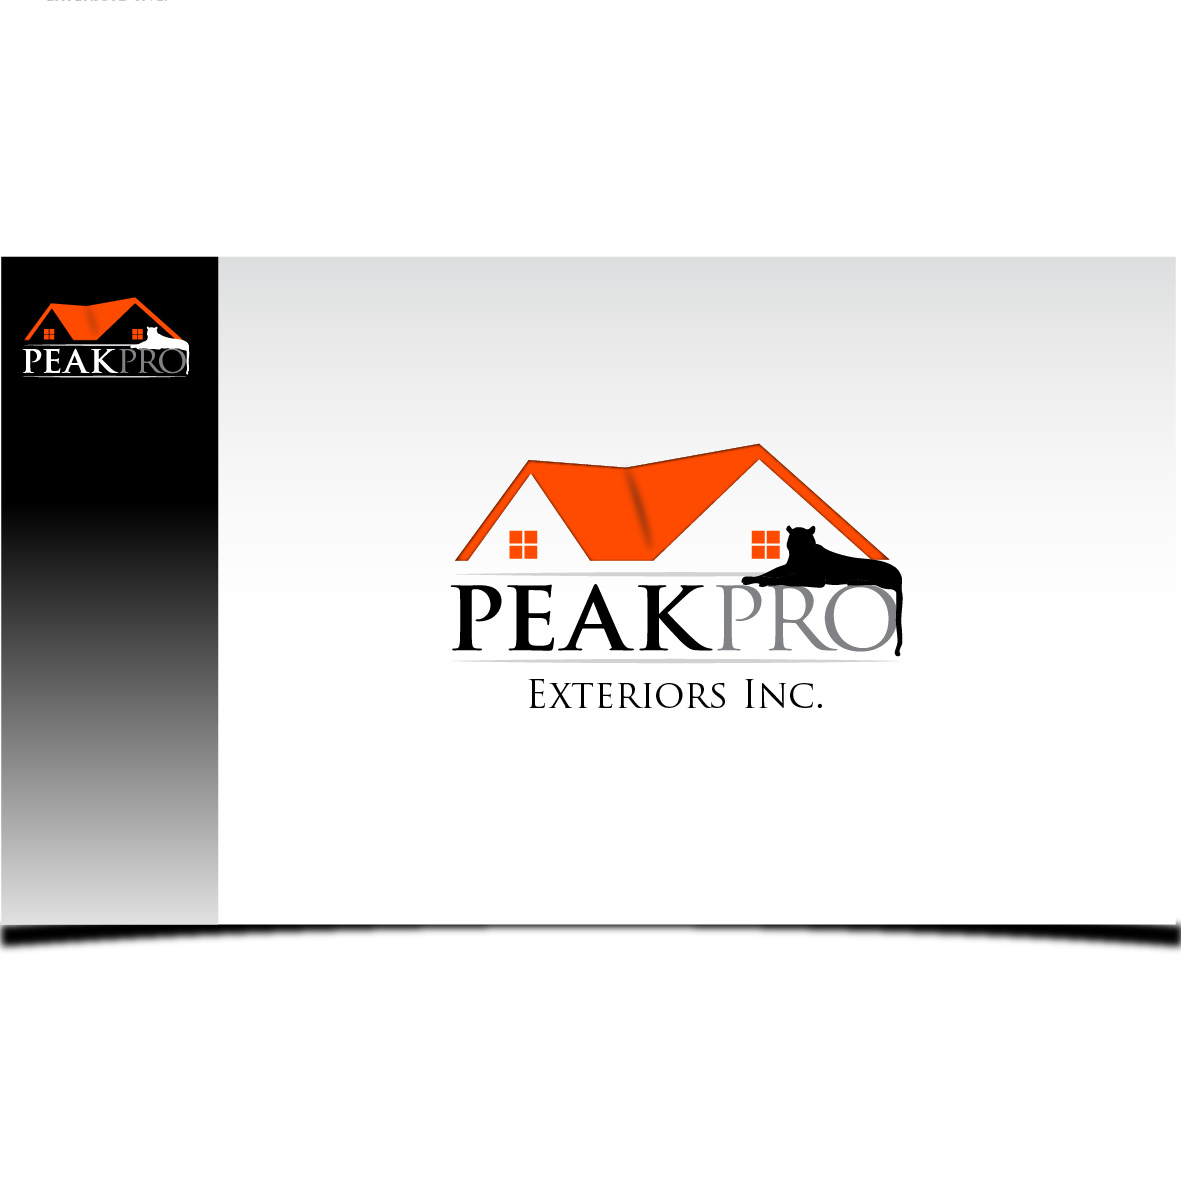 Logo Design by Robert Engi - Entry No. 78 in the Logo Design Contest Captivating Logo Design for Peakpro Exteriors Inc..